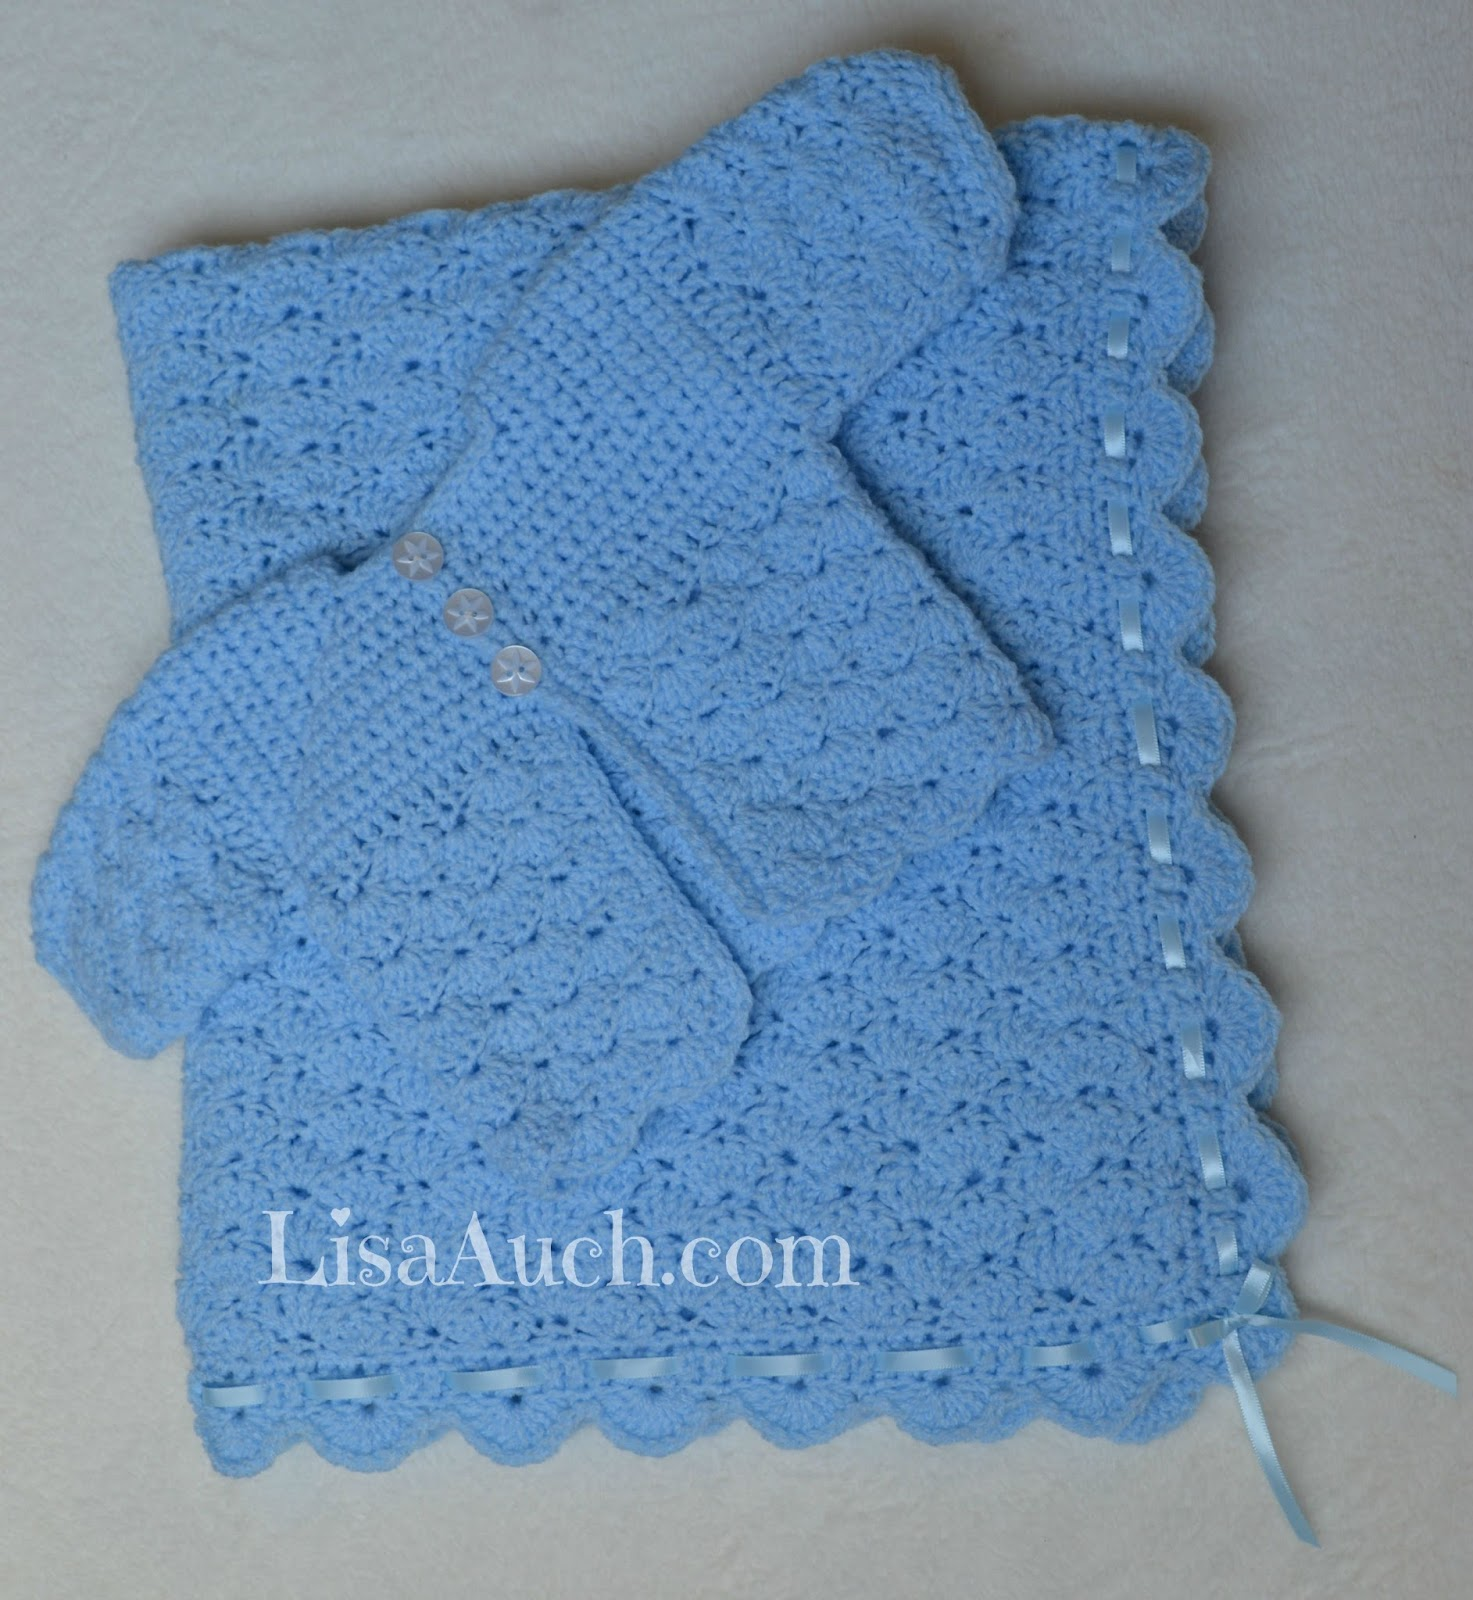 Free Crochet Patterns Newborn Baby Boy Hats : Free Crochet Patterns for Babies Cardigan and Blanket Set ...